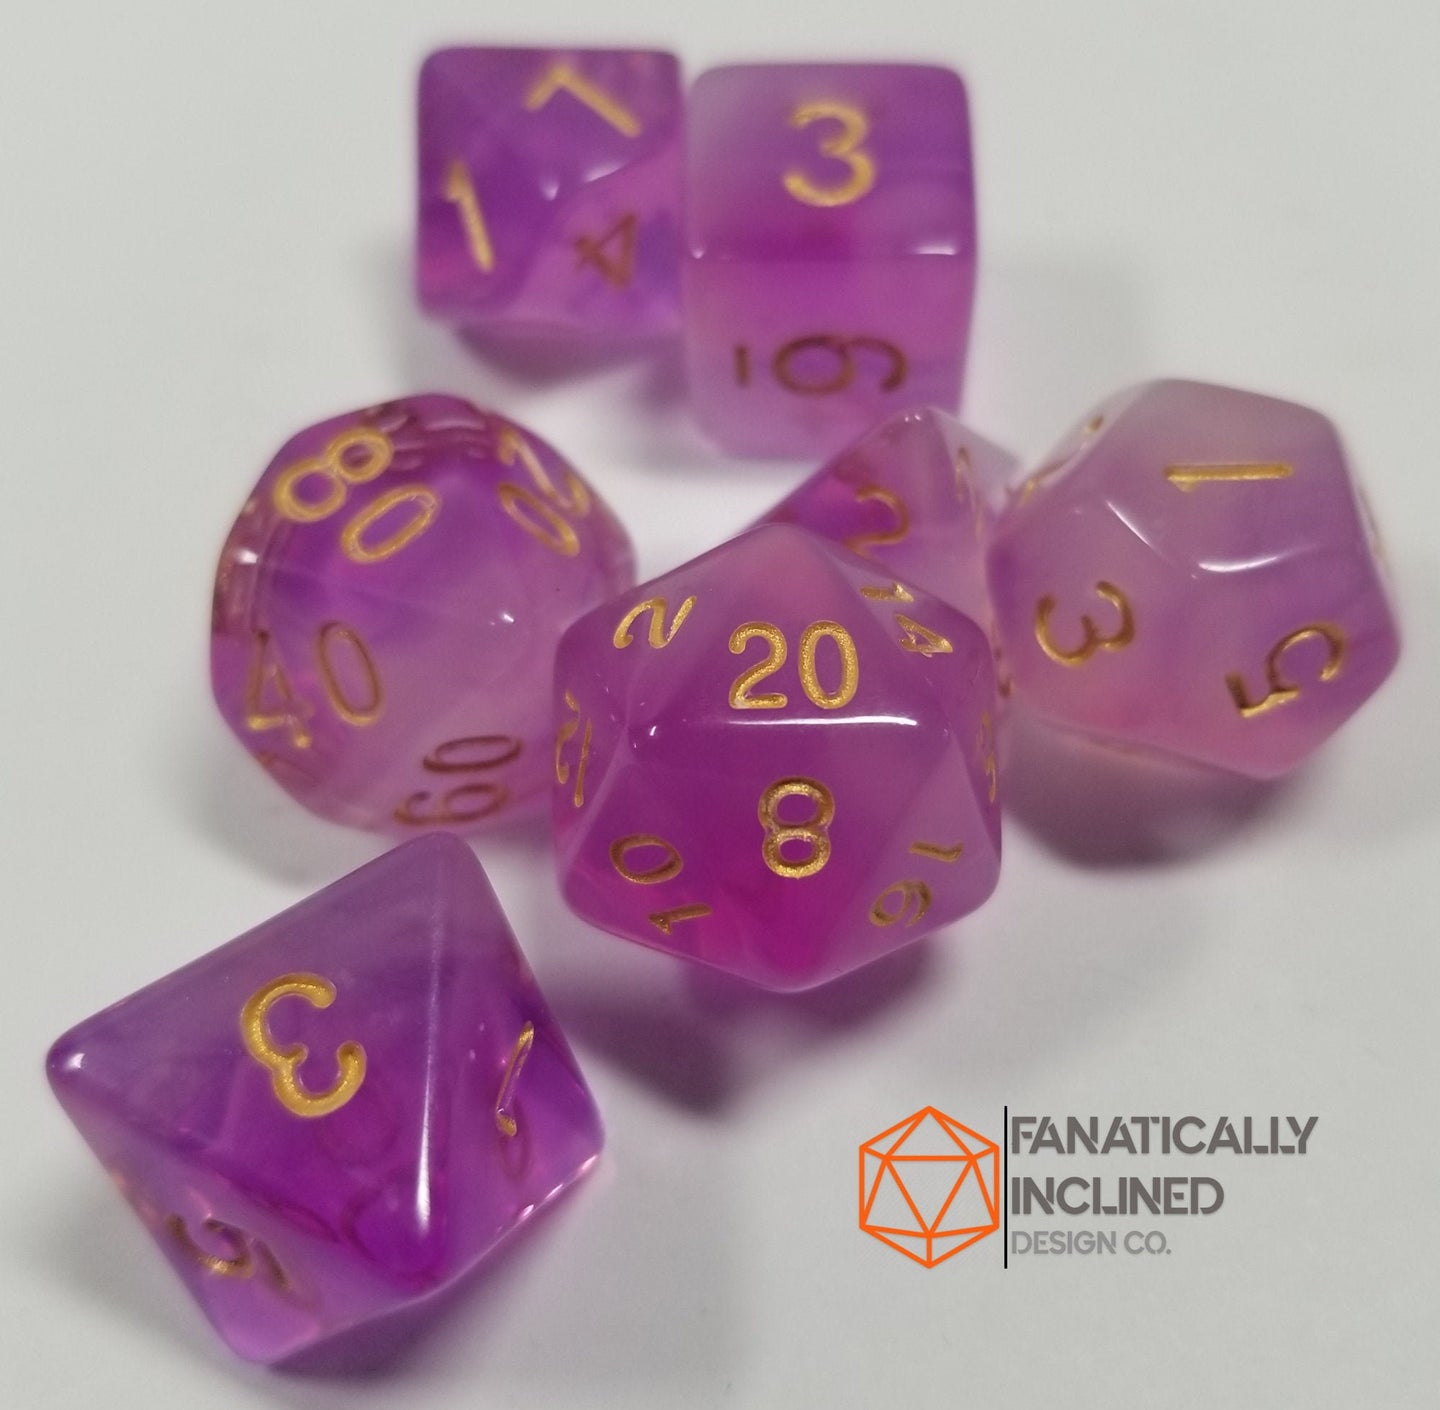 Purple White Swirl Mystical Orb 7pc Dice Set